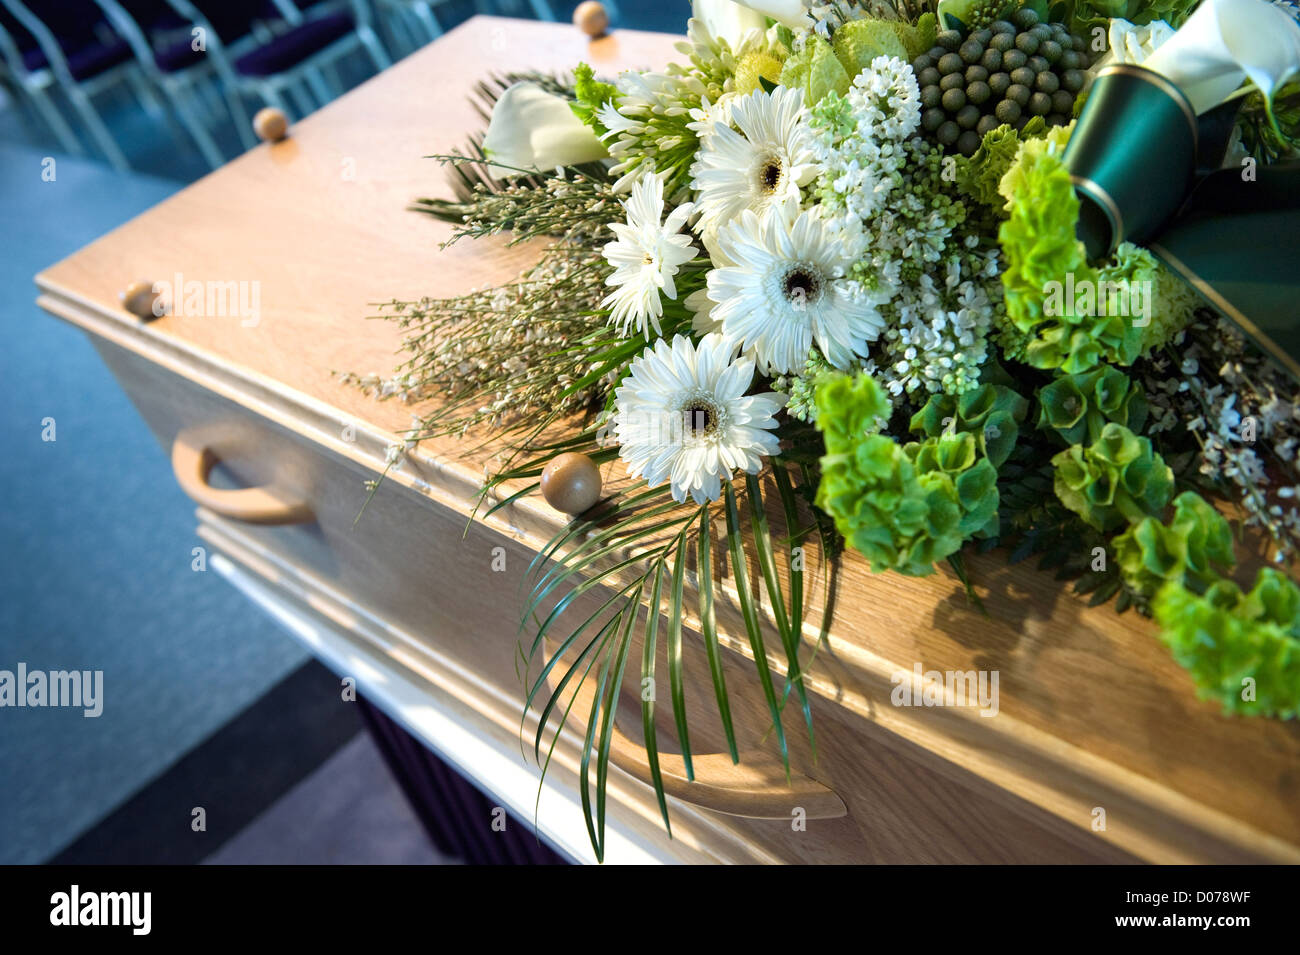 A coffin with a flower arrangement at a mortuary - Stock Image